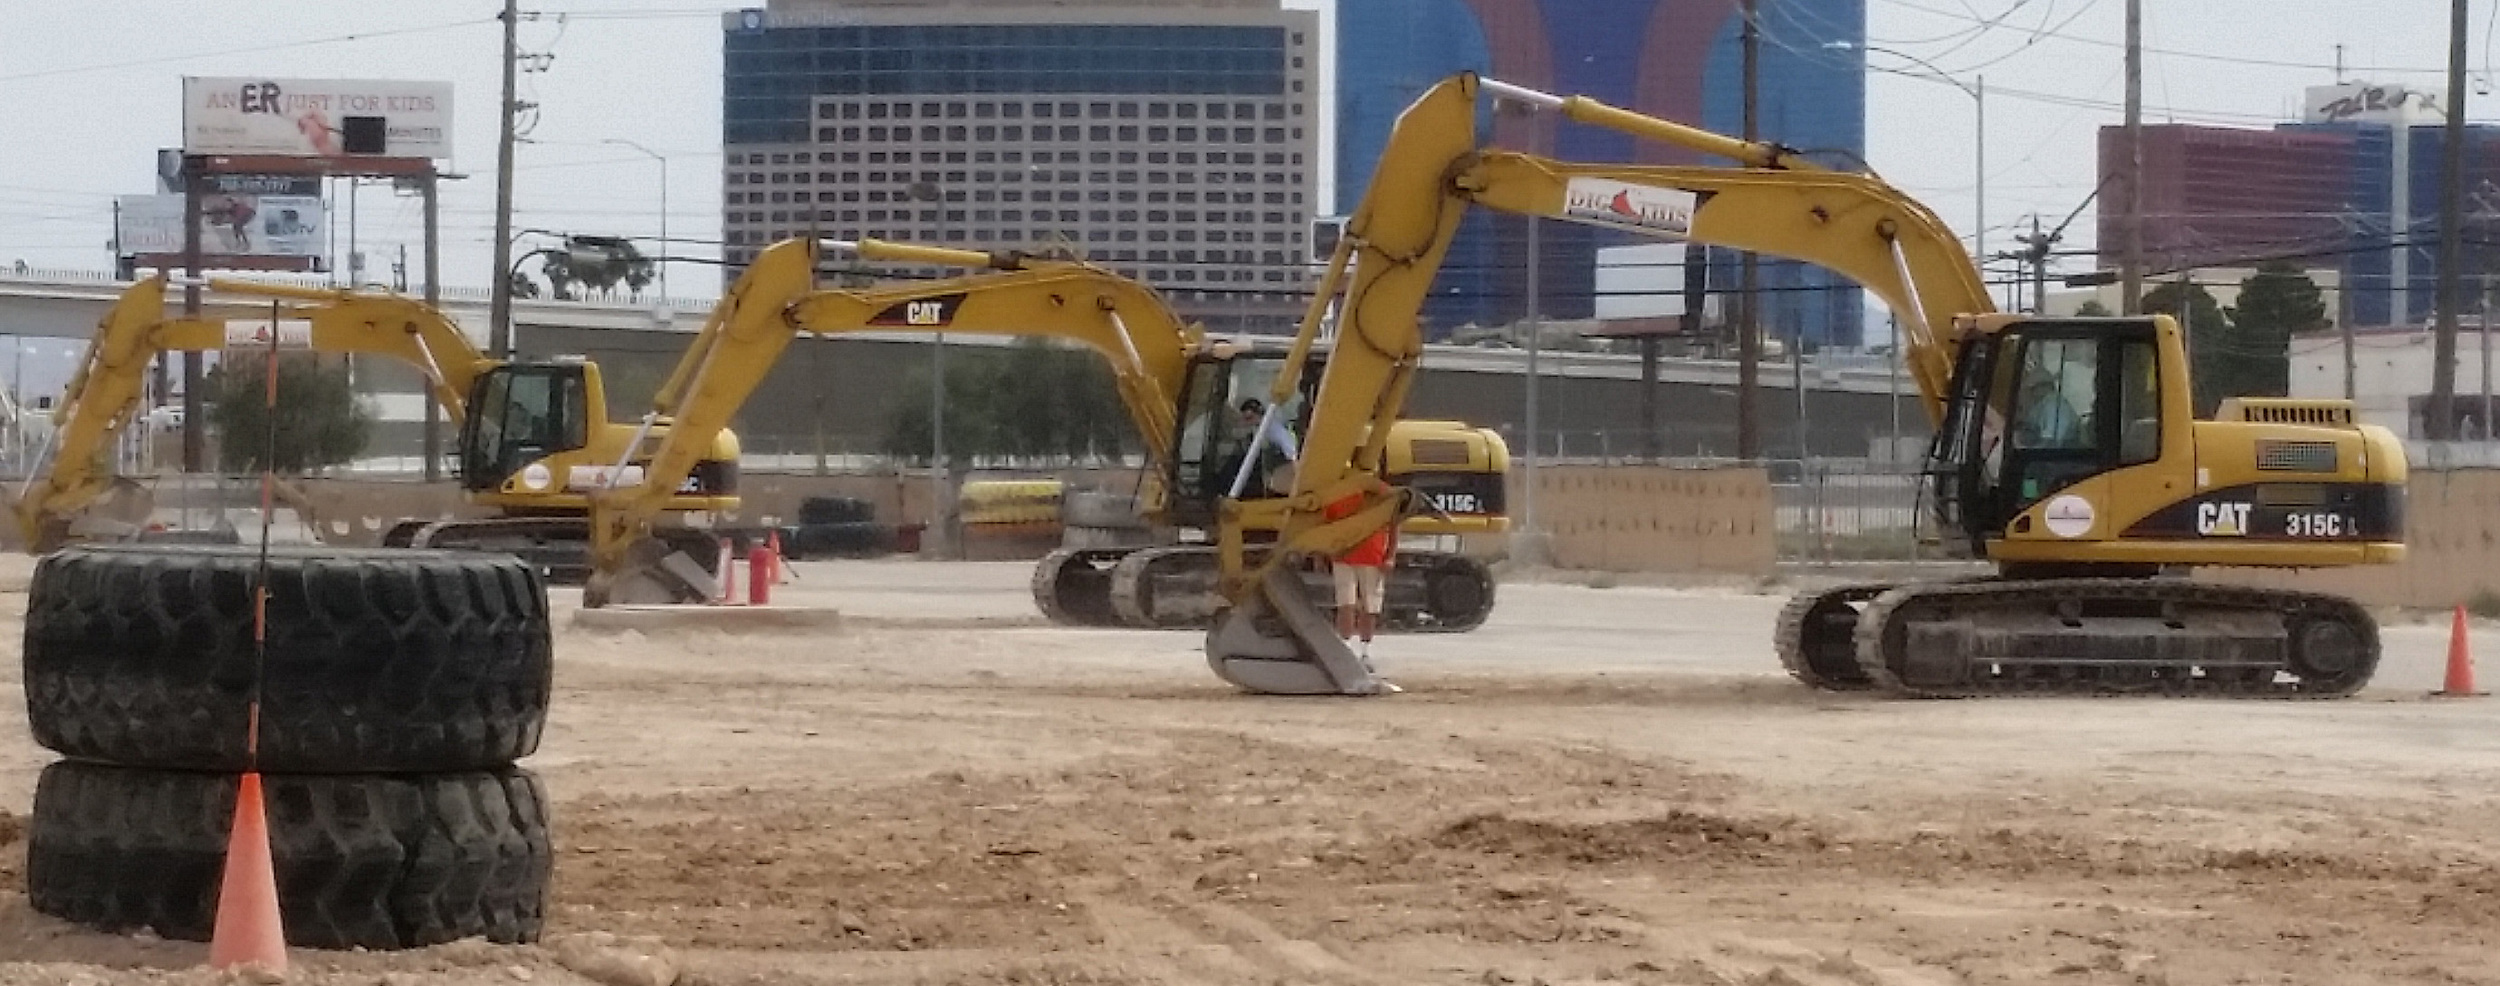 Excavator competition - who can dig the biggest hole.